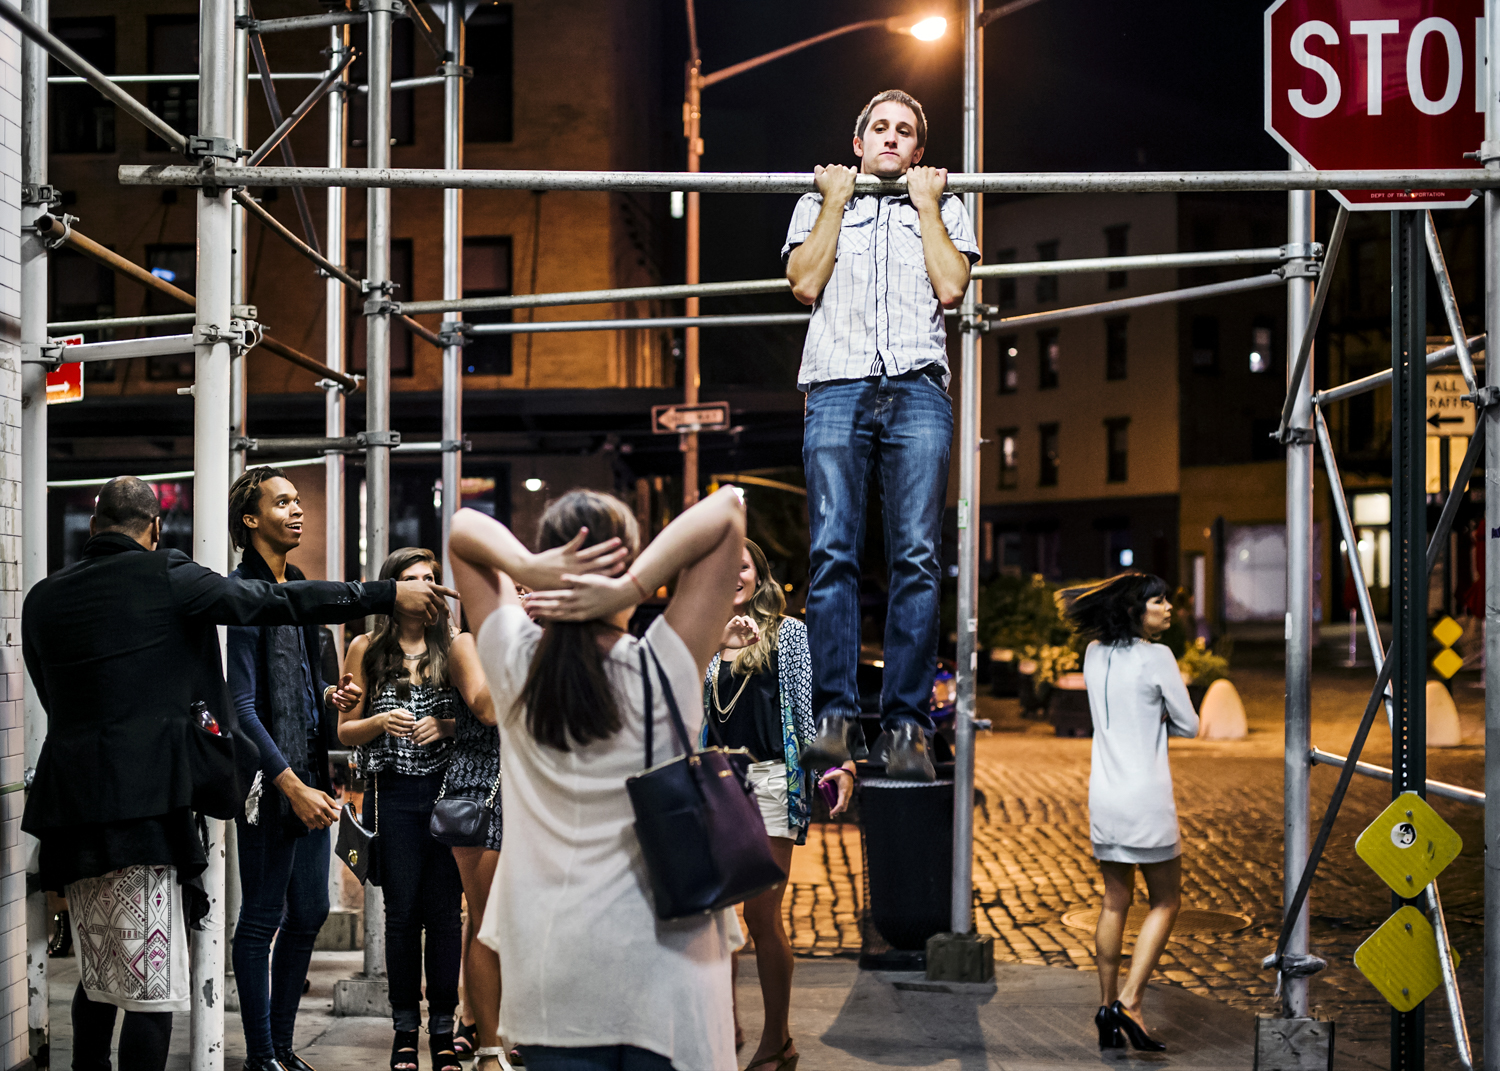 A man does pull-ups on scaffolding in the Meatpacking District in September 2014.